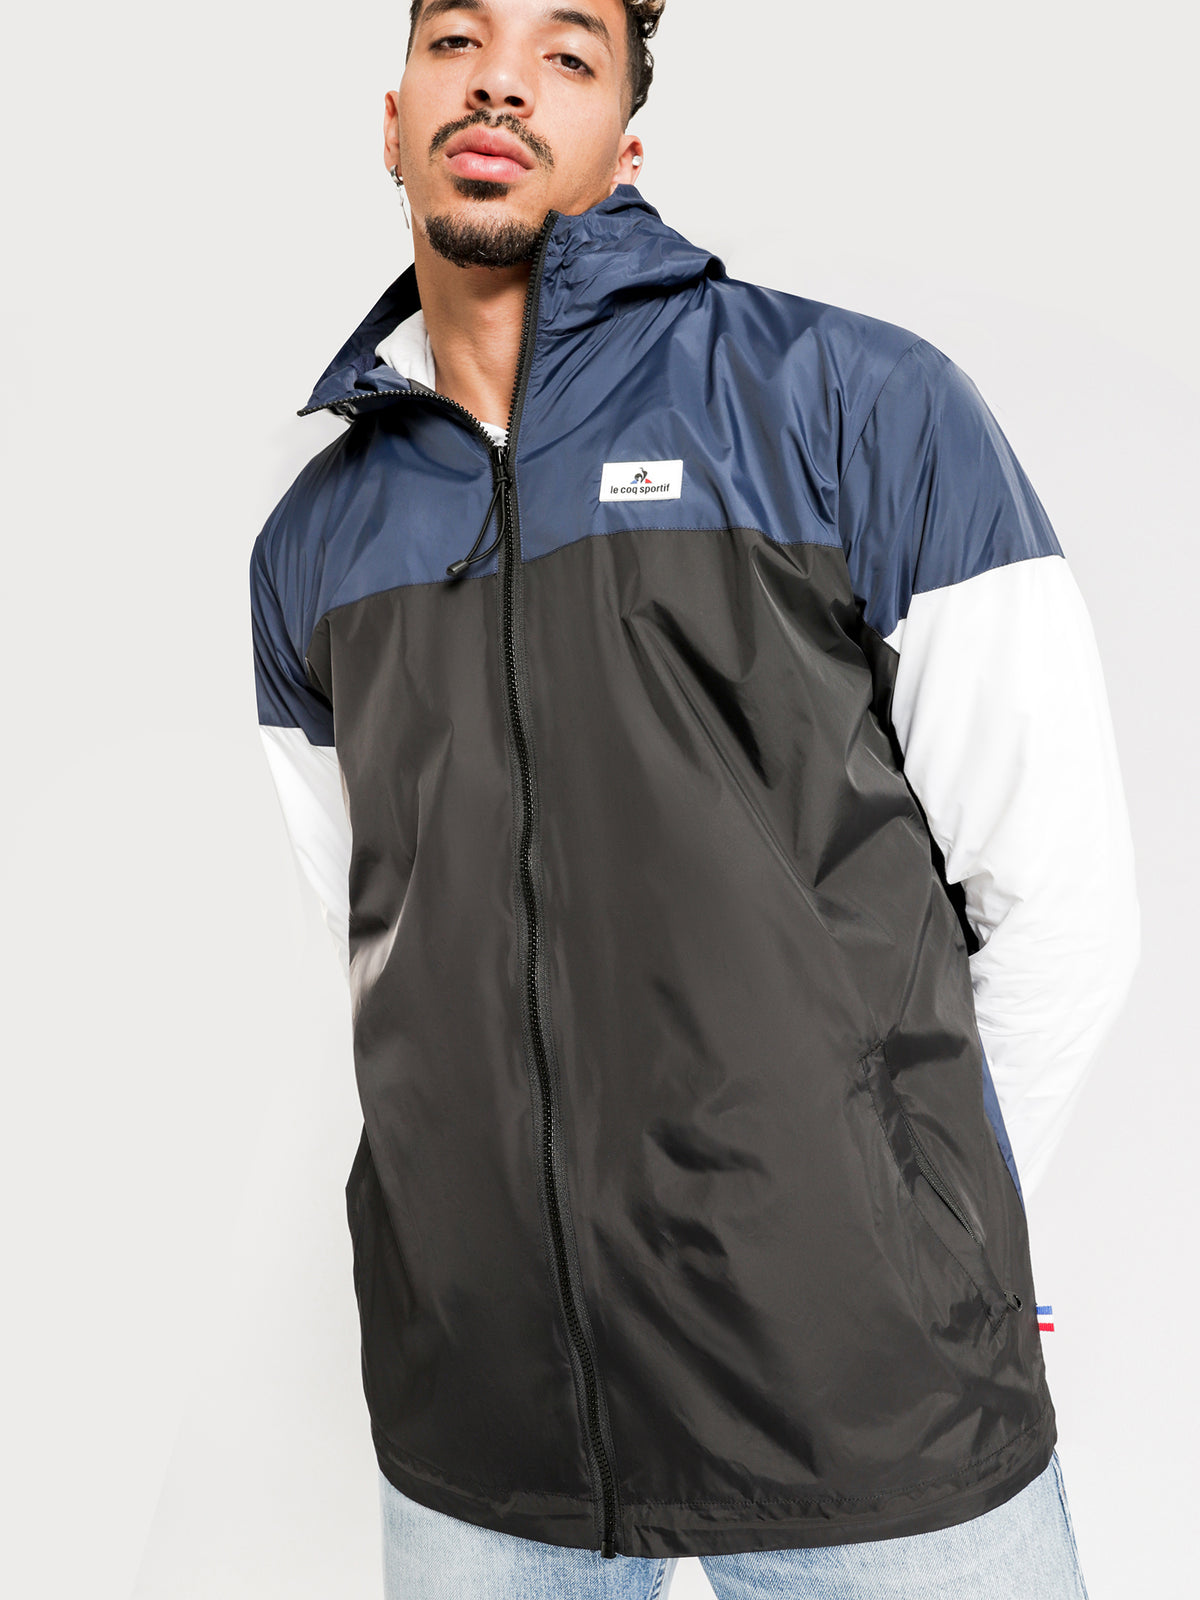 Gower Spray Jacket in Blue